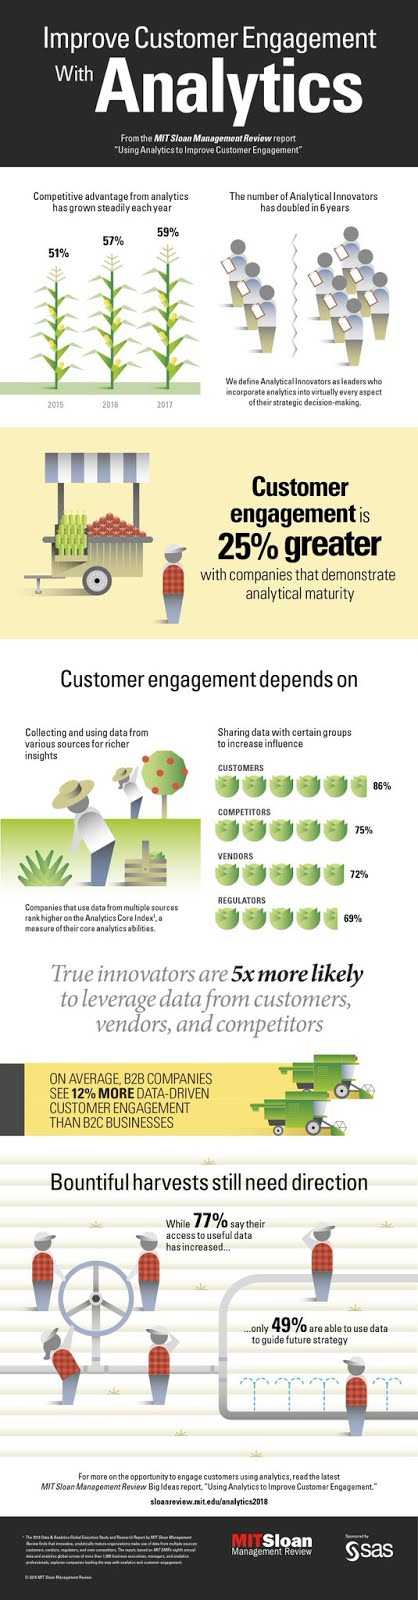 Improve #Customer #Engagement with #Analytics